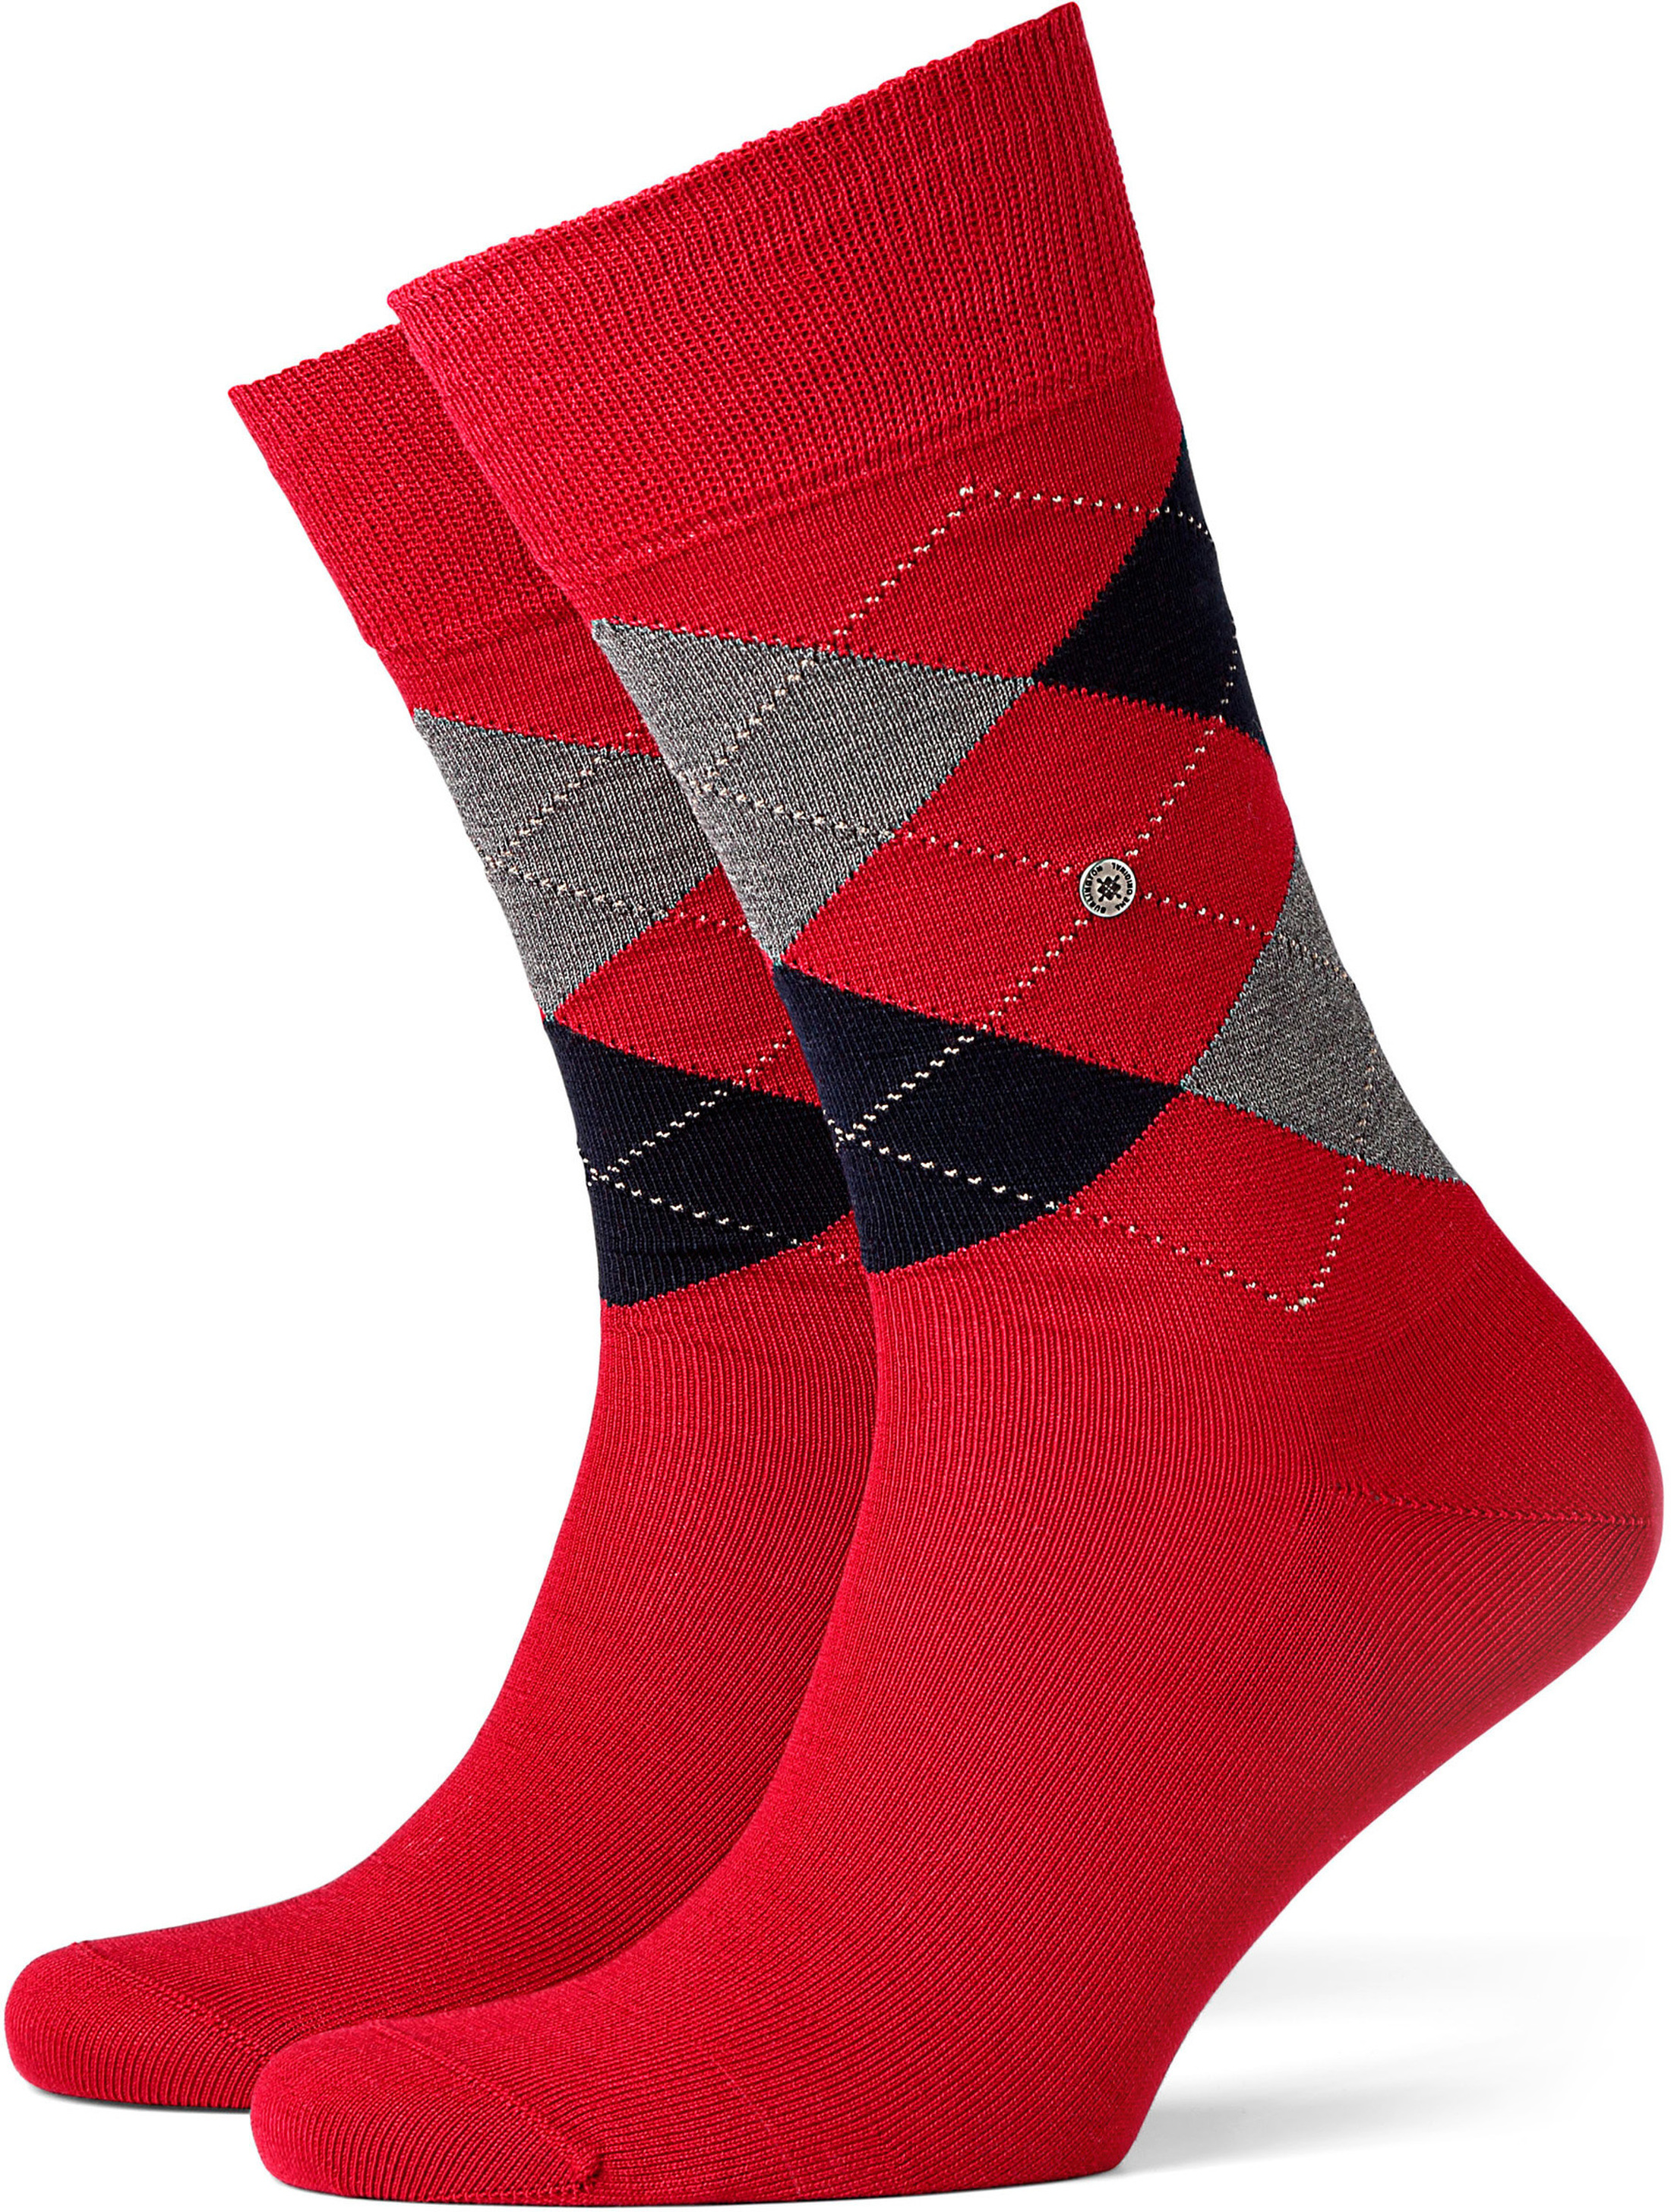 Burlington Socks Cotton 8006